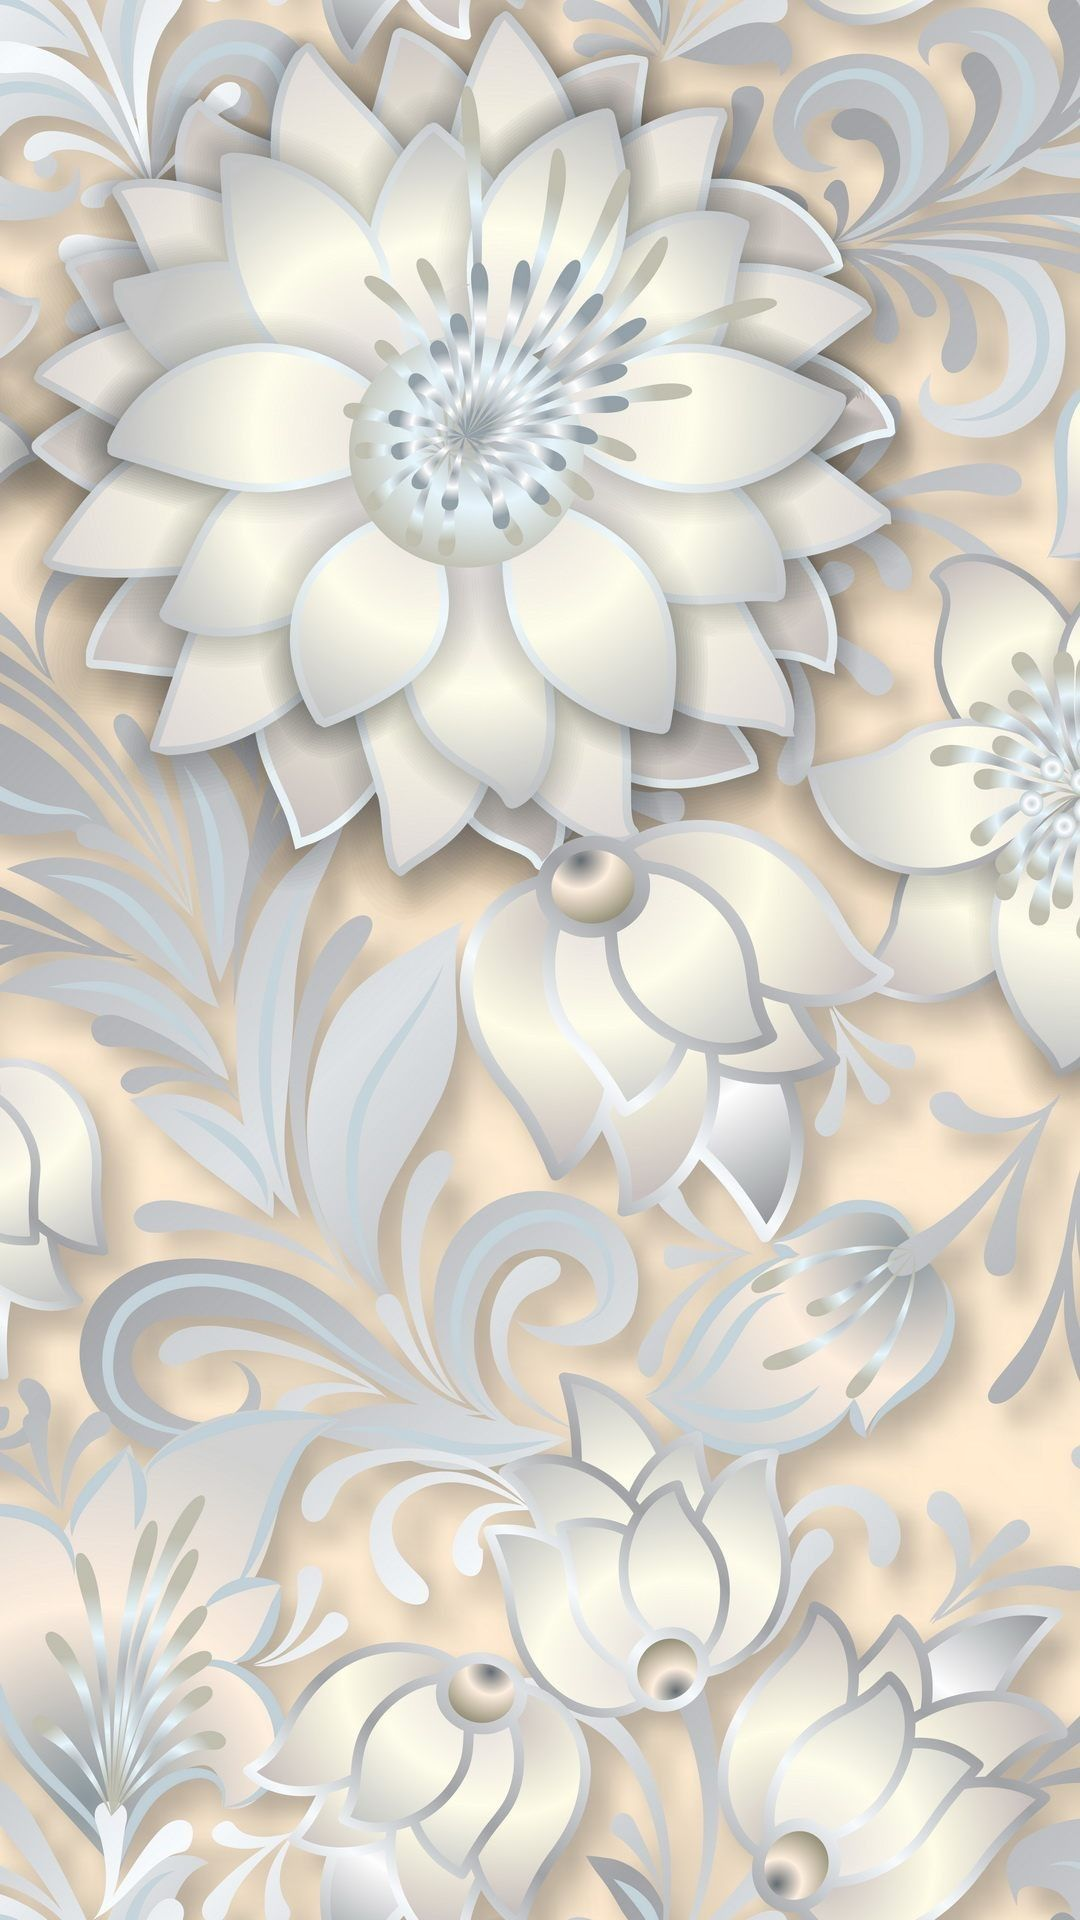 Silver plated flowers wallpaper. Flowers, gold, silver, vector, white, decoration, iPhone, Android, HD Wallpaper Sazum 2017.